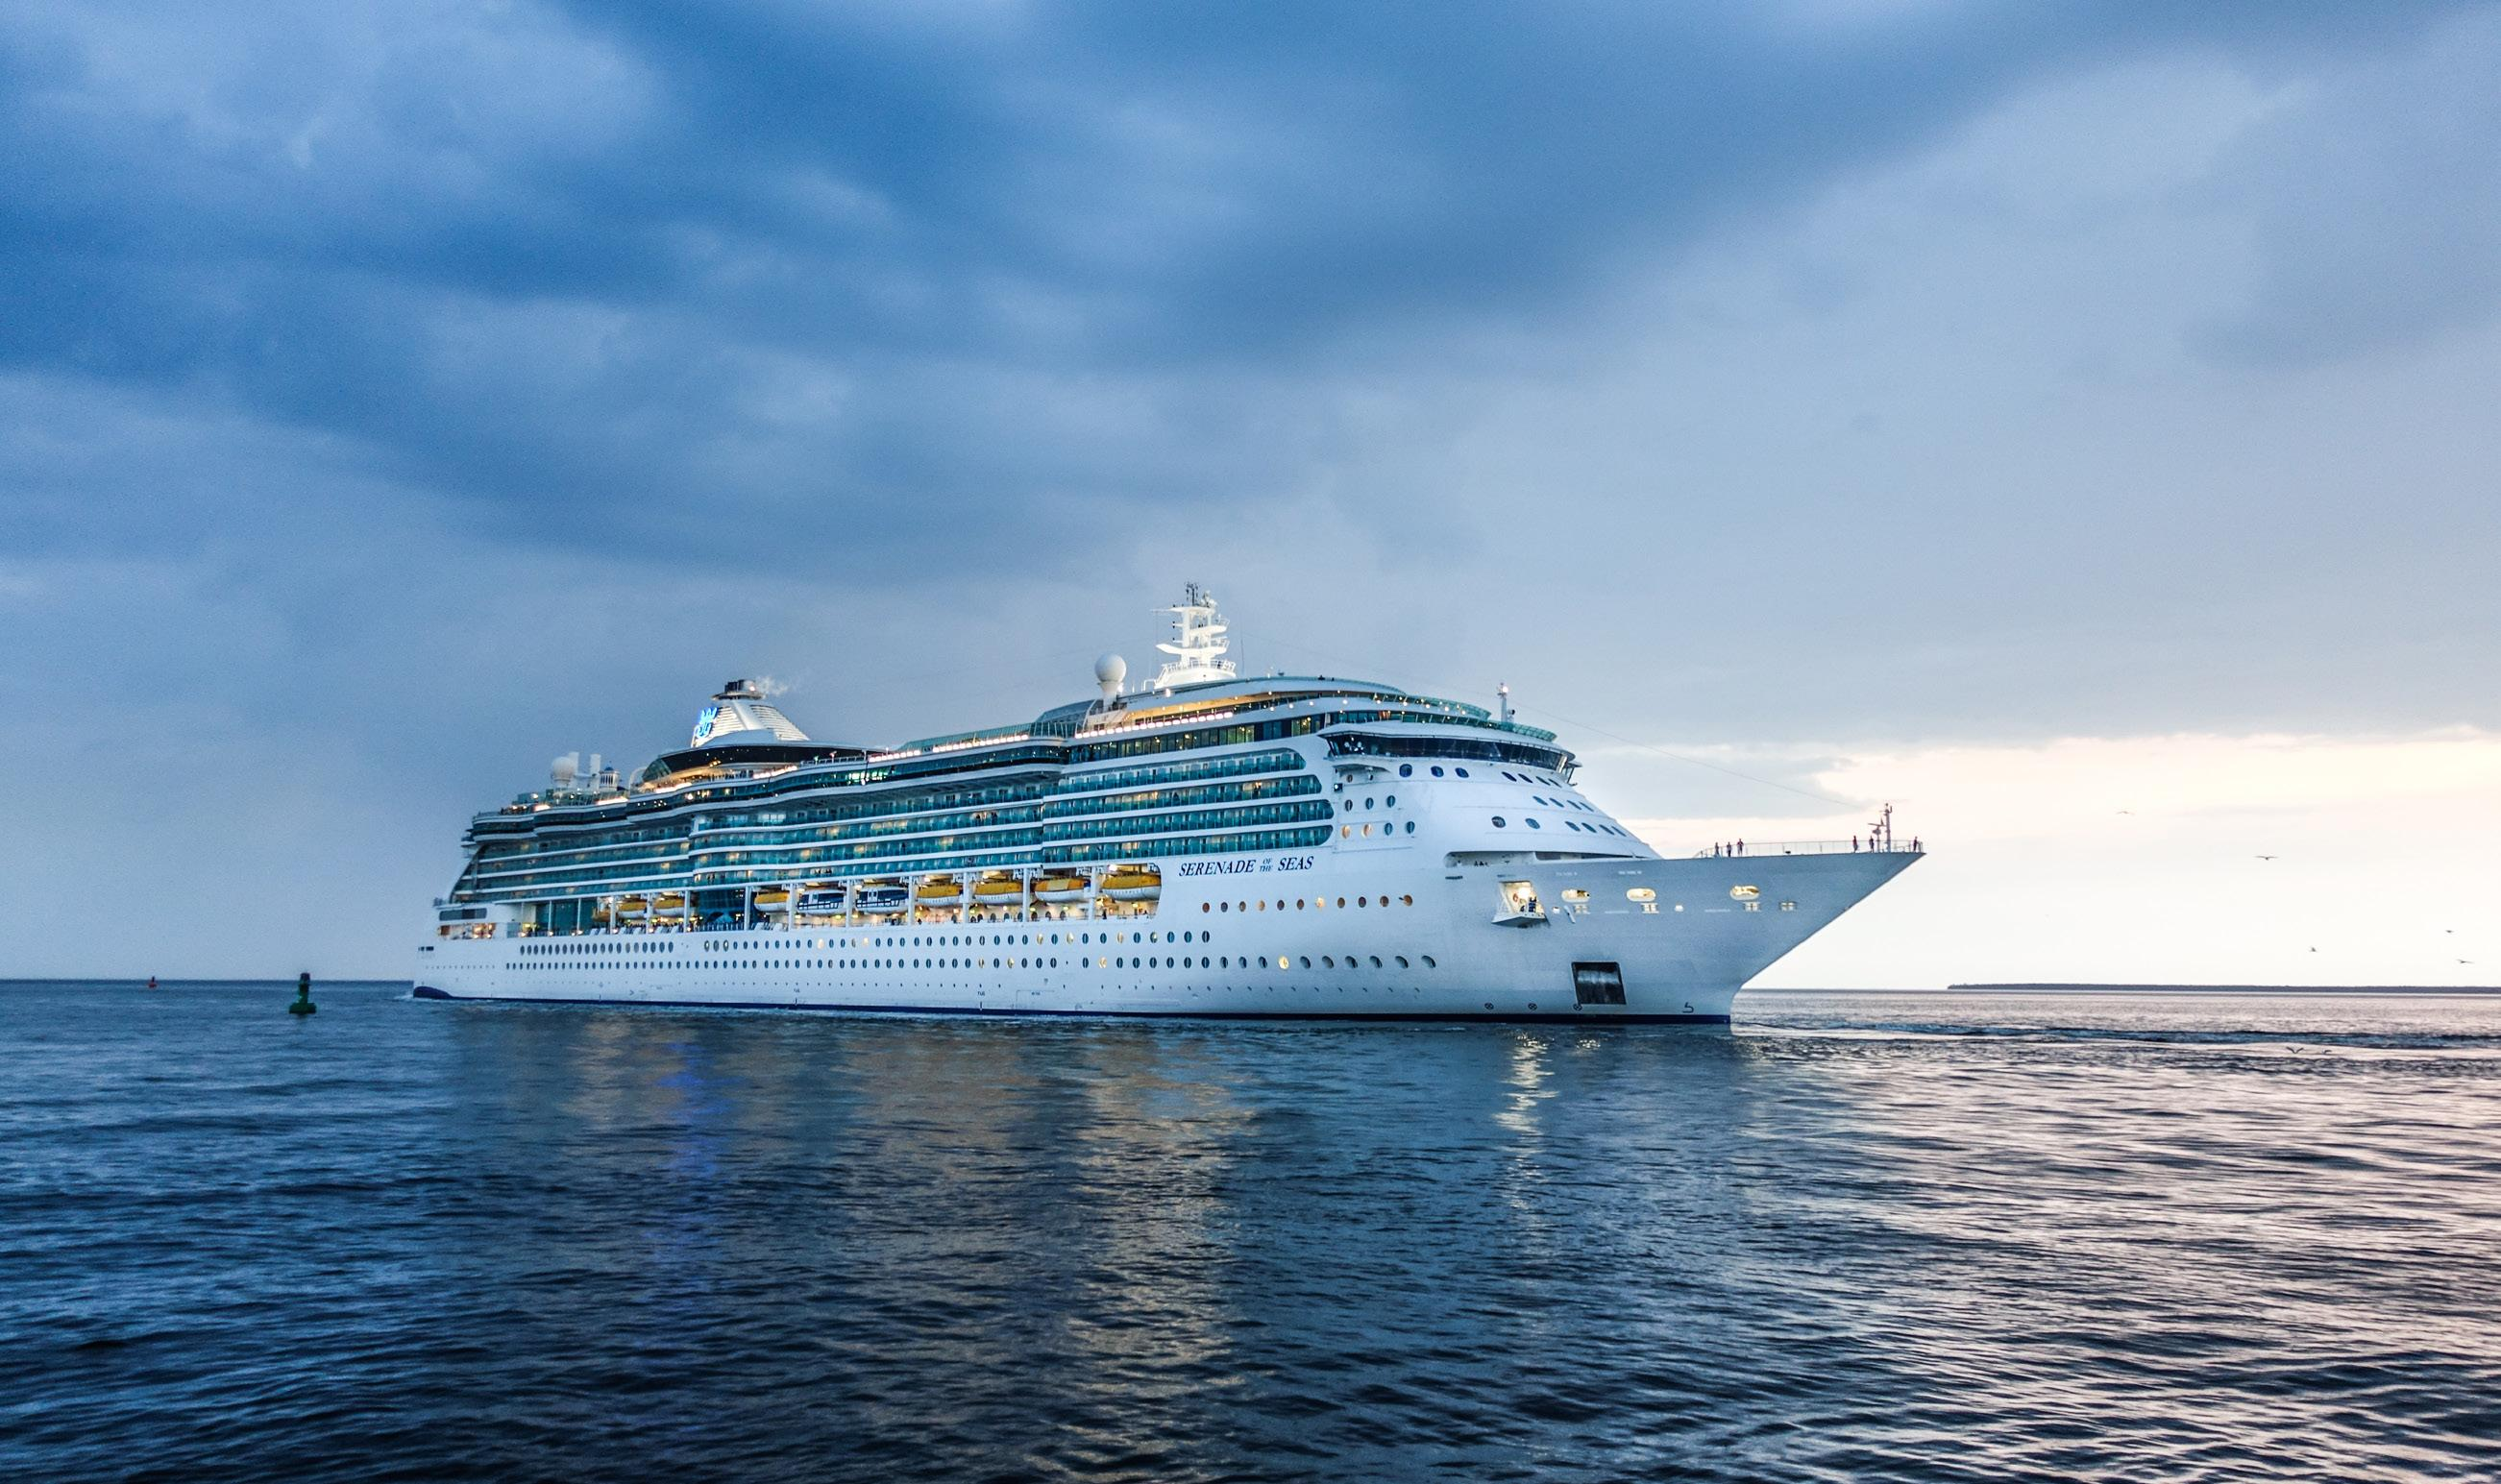 Page 20 of International law and cruise ships — Sailing into stormy waters